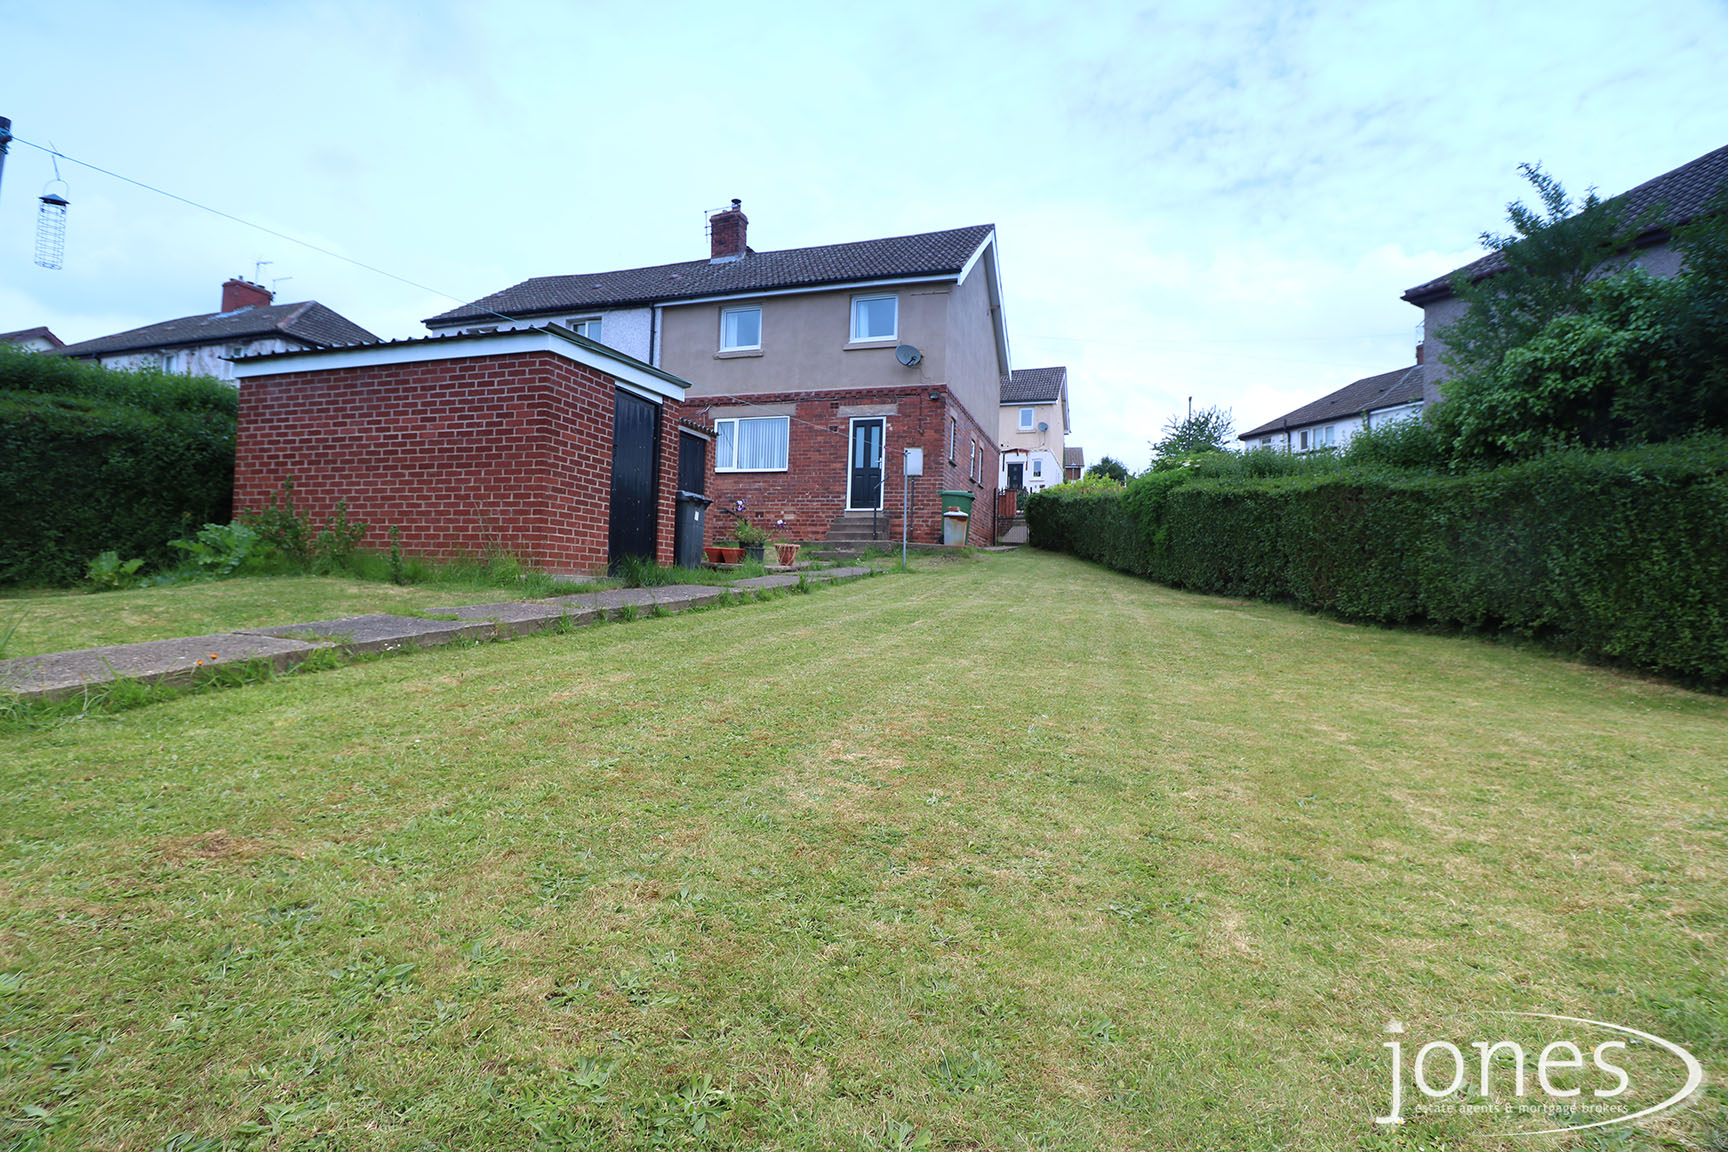 Home for Sale Let - Photo 09 Mill Crescent, Whitwell, Worksop, S80 4SF